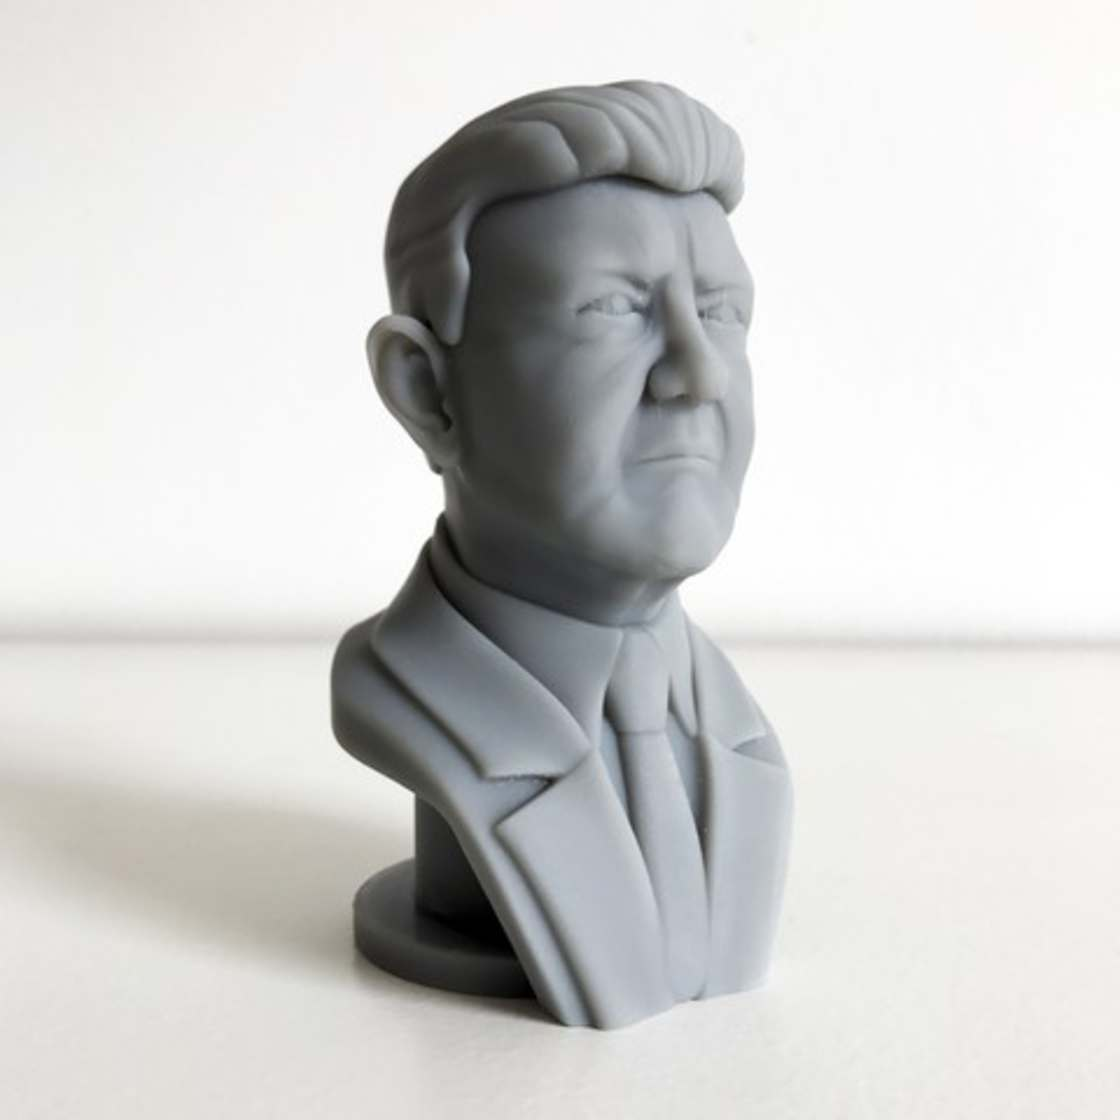 French Presidential 2017 - 3D printing your favorite candidates